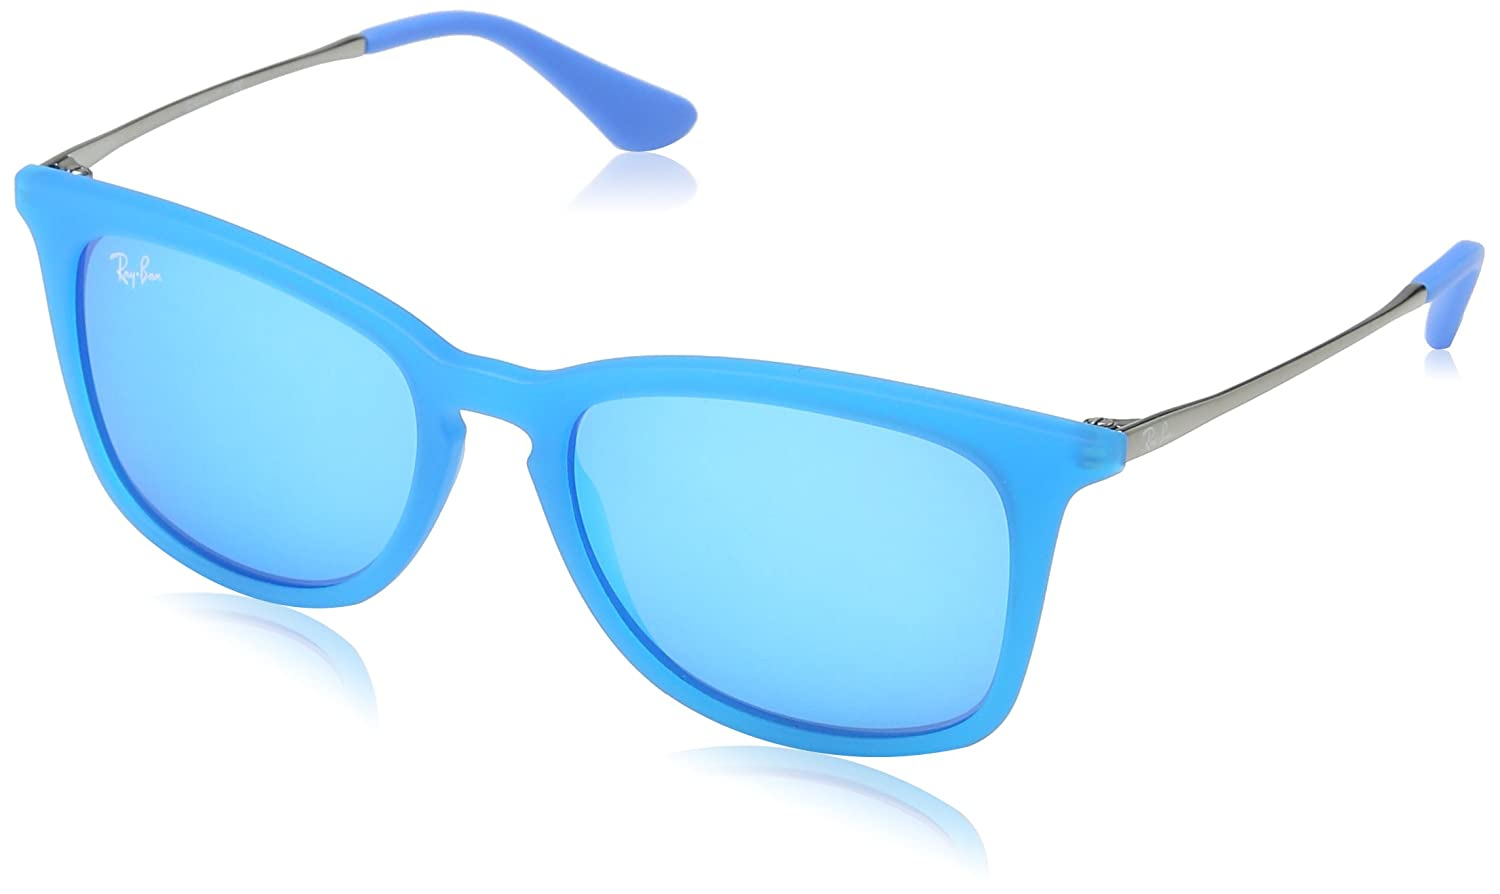 d816096ec76a8a Ray-Ban Kids  Injected Unisex Sunglass Square